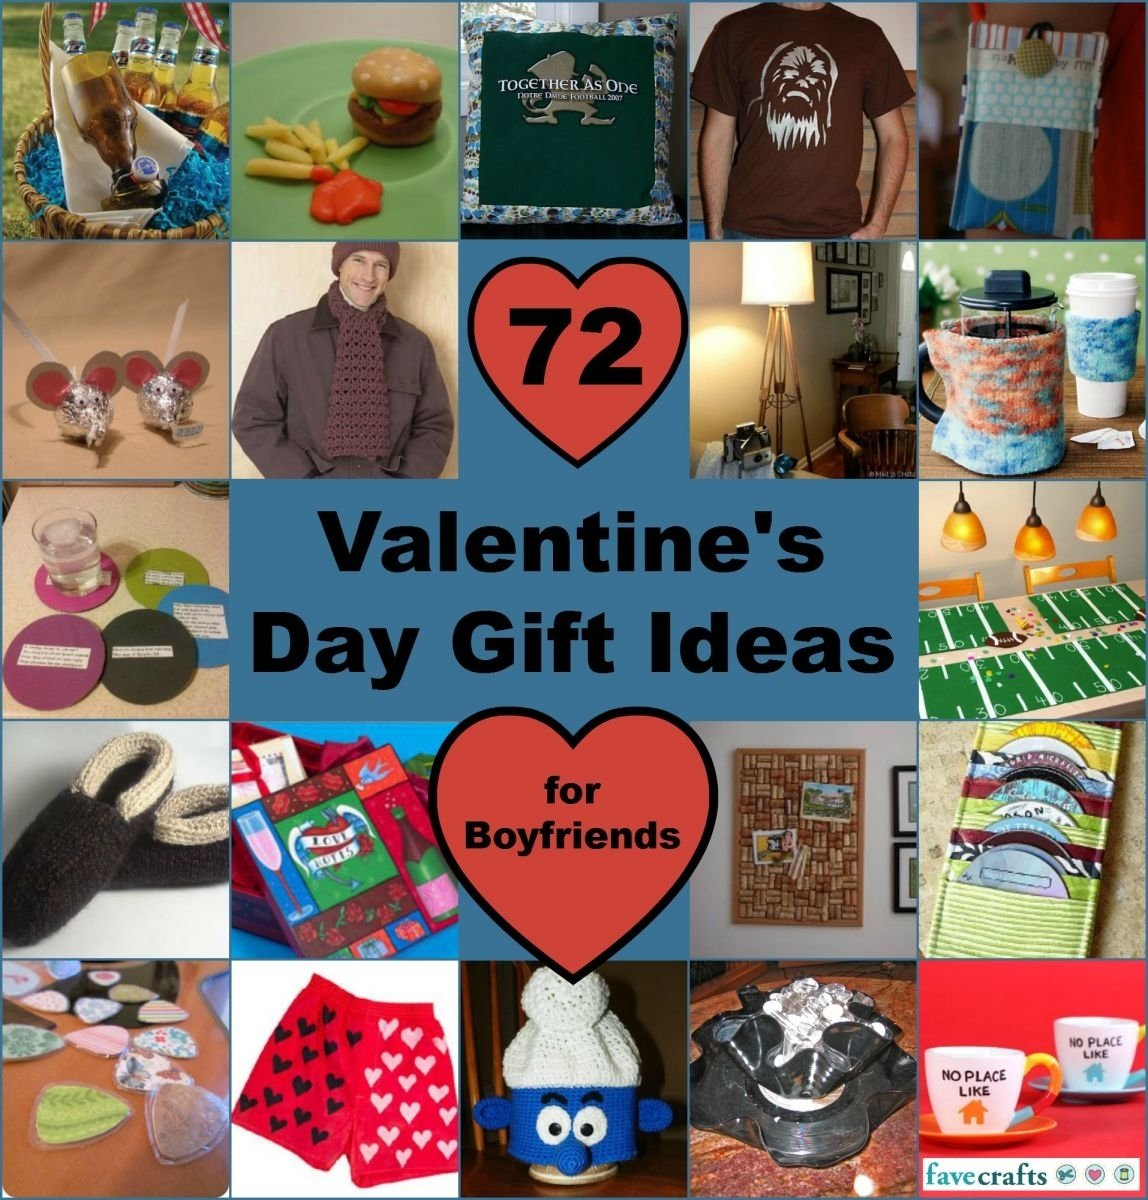 10 Lovable Good Valentines Day Ideas For Guys boyfriend valentines day ideas startupcorner co 2021